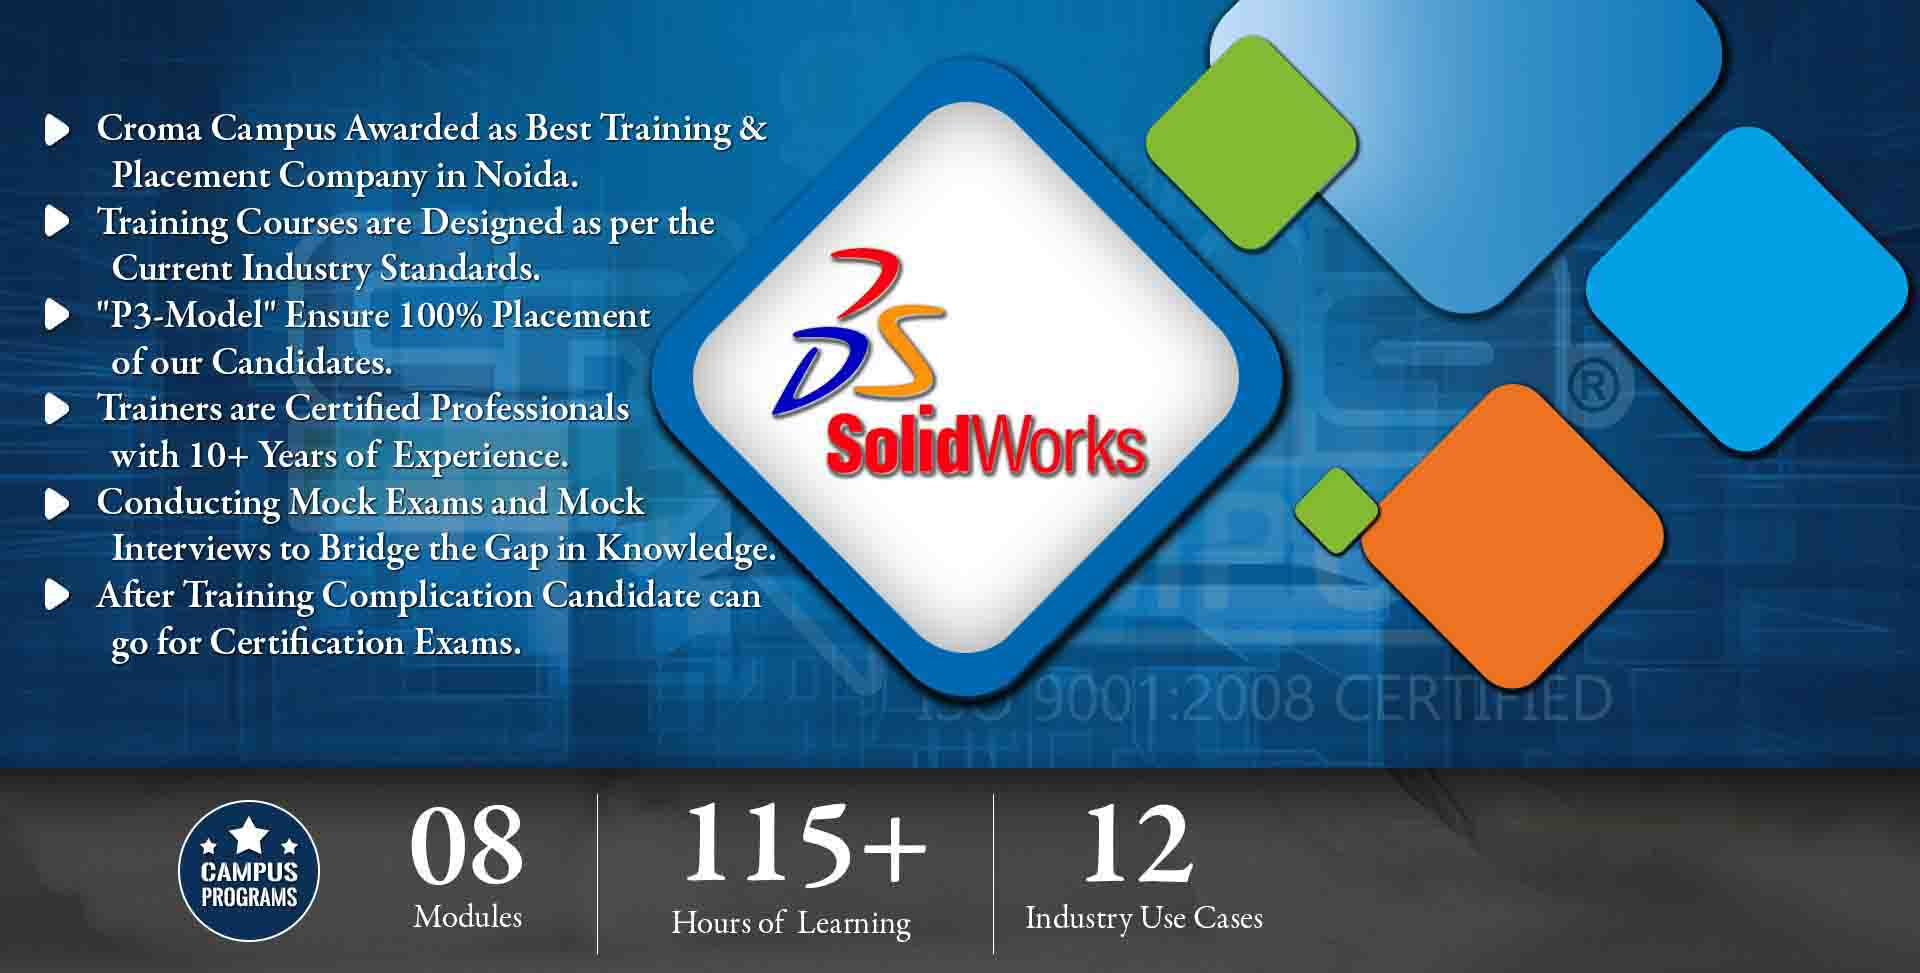 Solidworks Training in Delhi NCR- Croma Campus